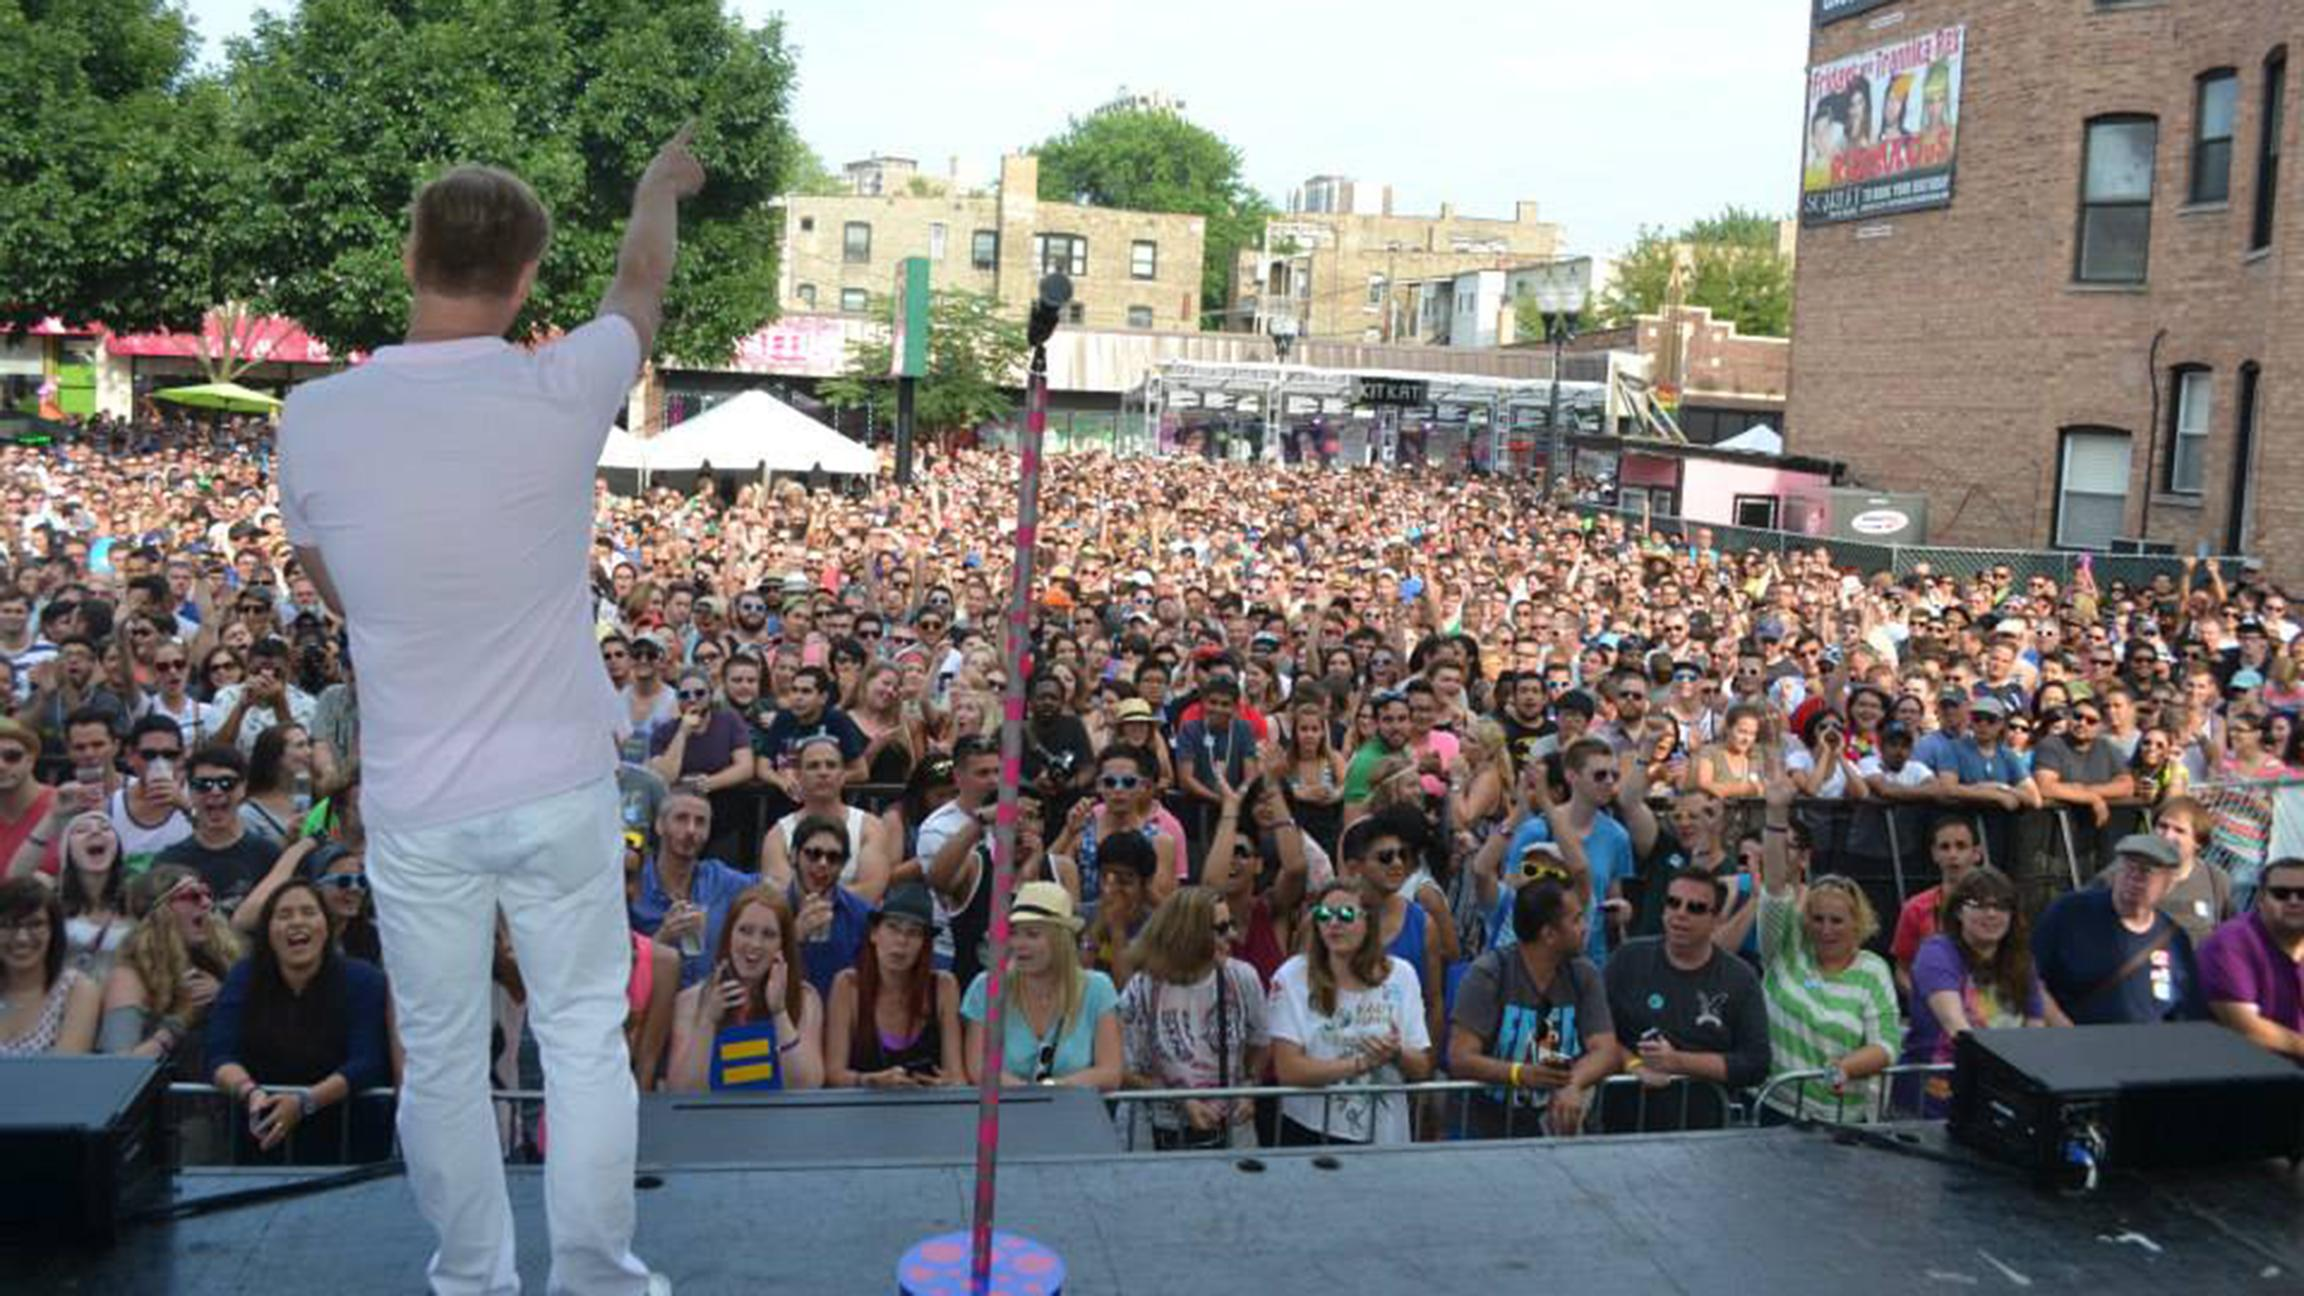 Organizers say more than 180,000 people flock to Halsted Street for the annual Market Days Festival. (Courtesy Northalsted Business Alliance)